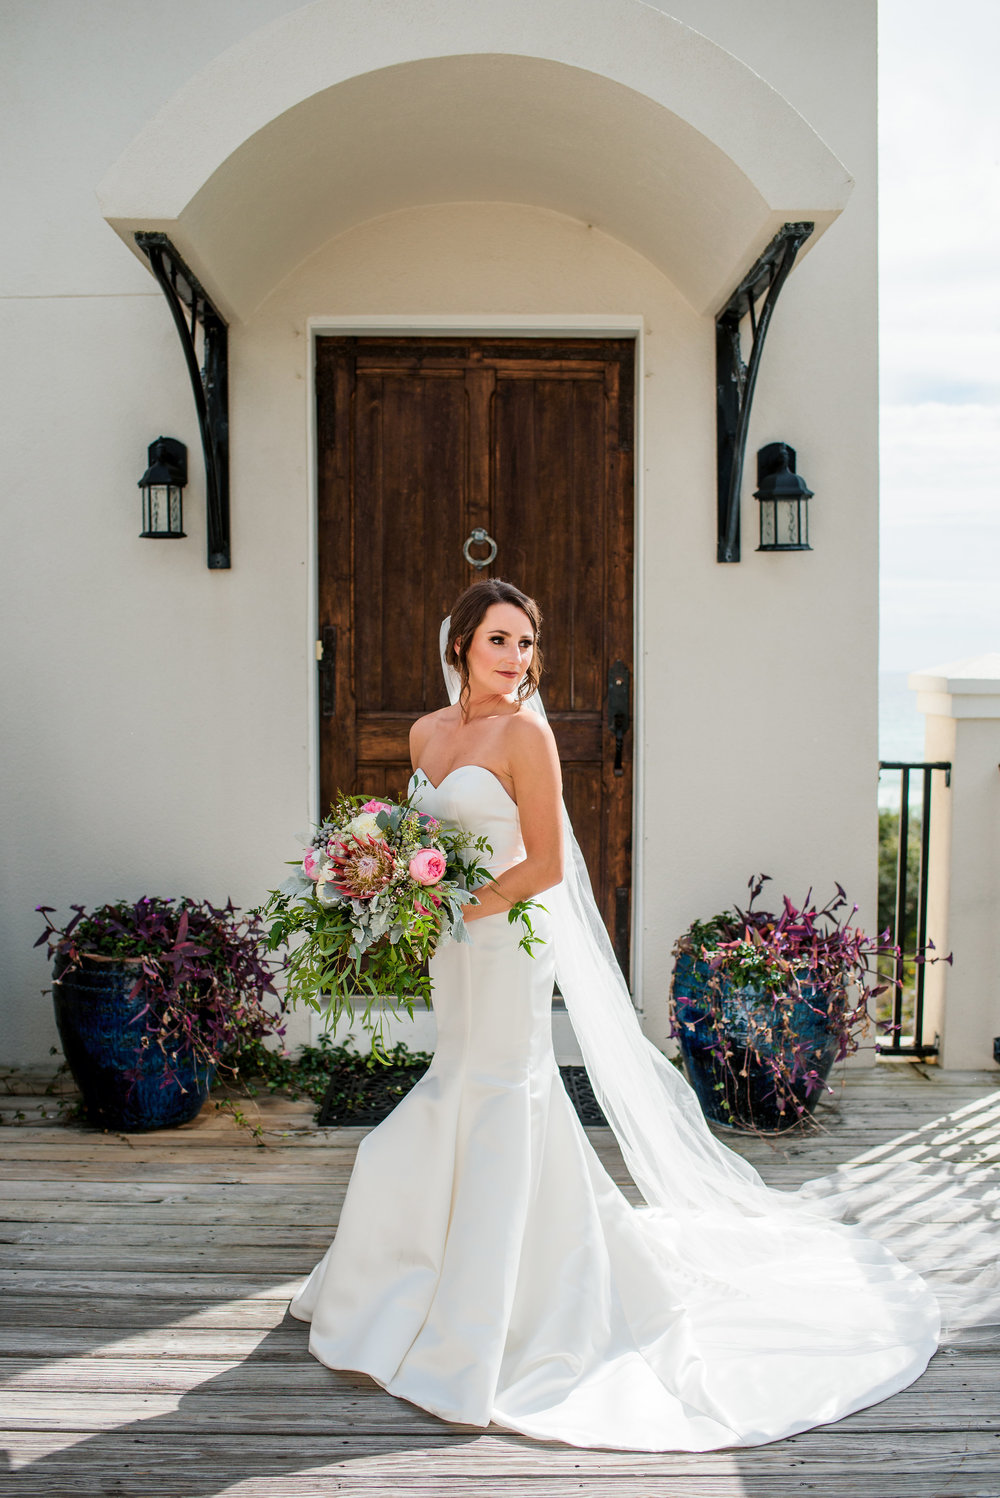 Santa Rosa Beach Wedding8.jpg